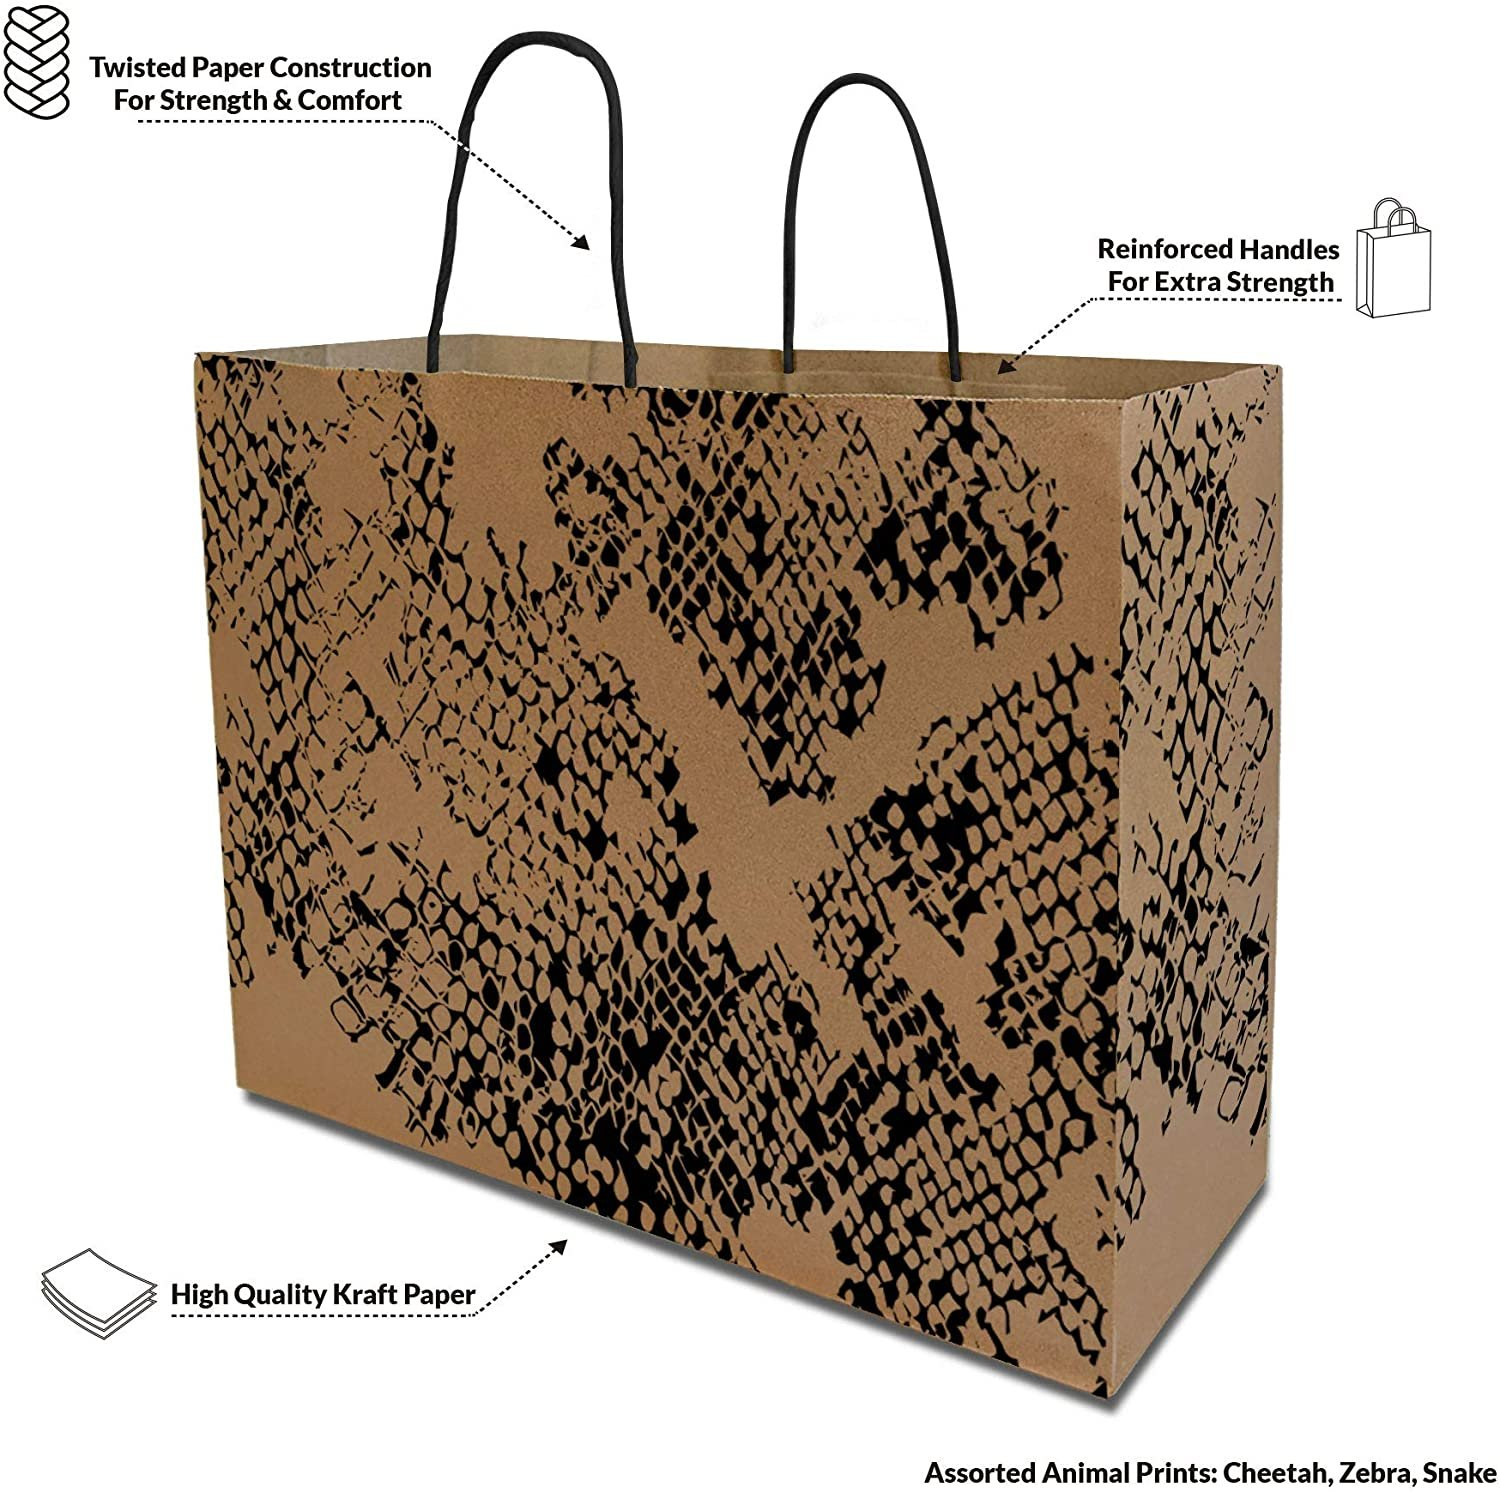 Details about  /Brown Kraft Paper Gift Bags Assorted Animal Print with Black Handle 16x5 x12